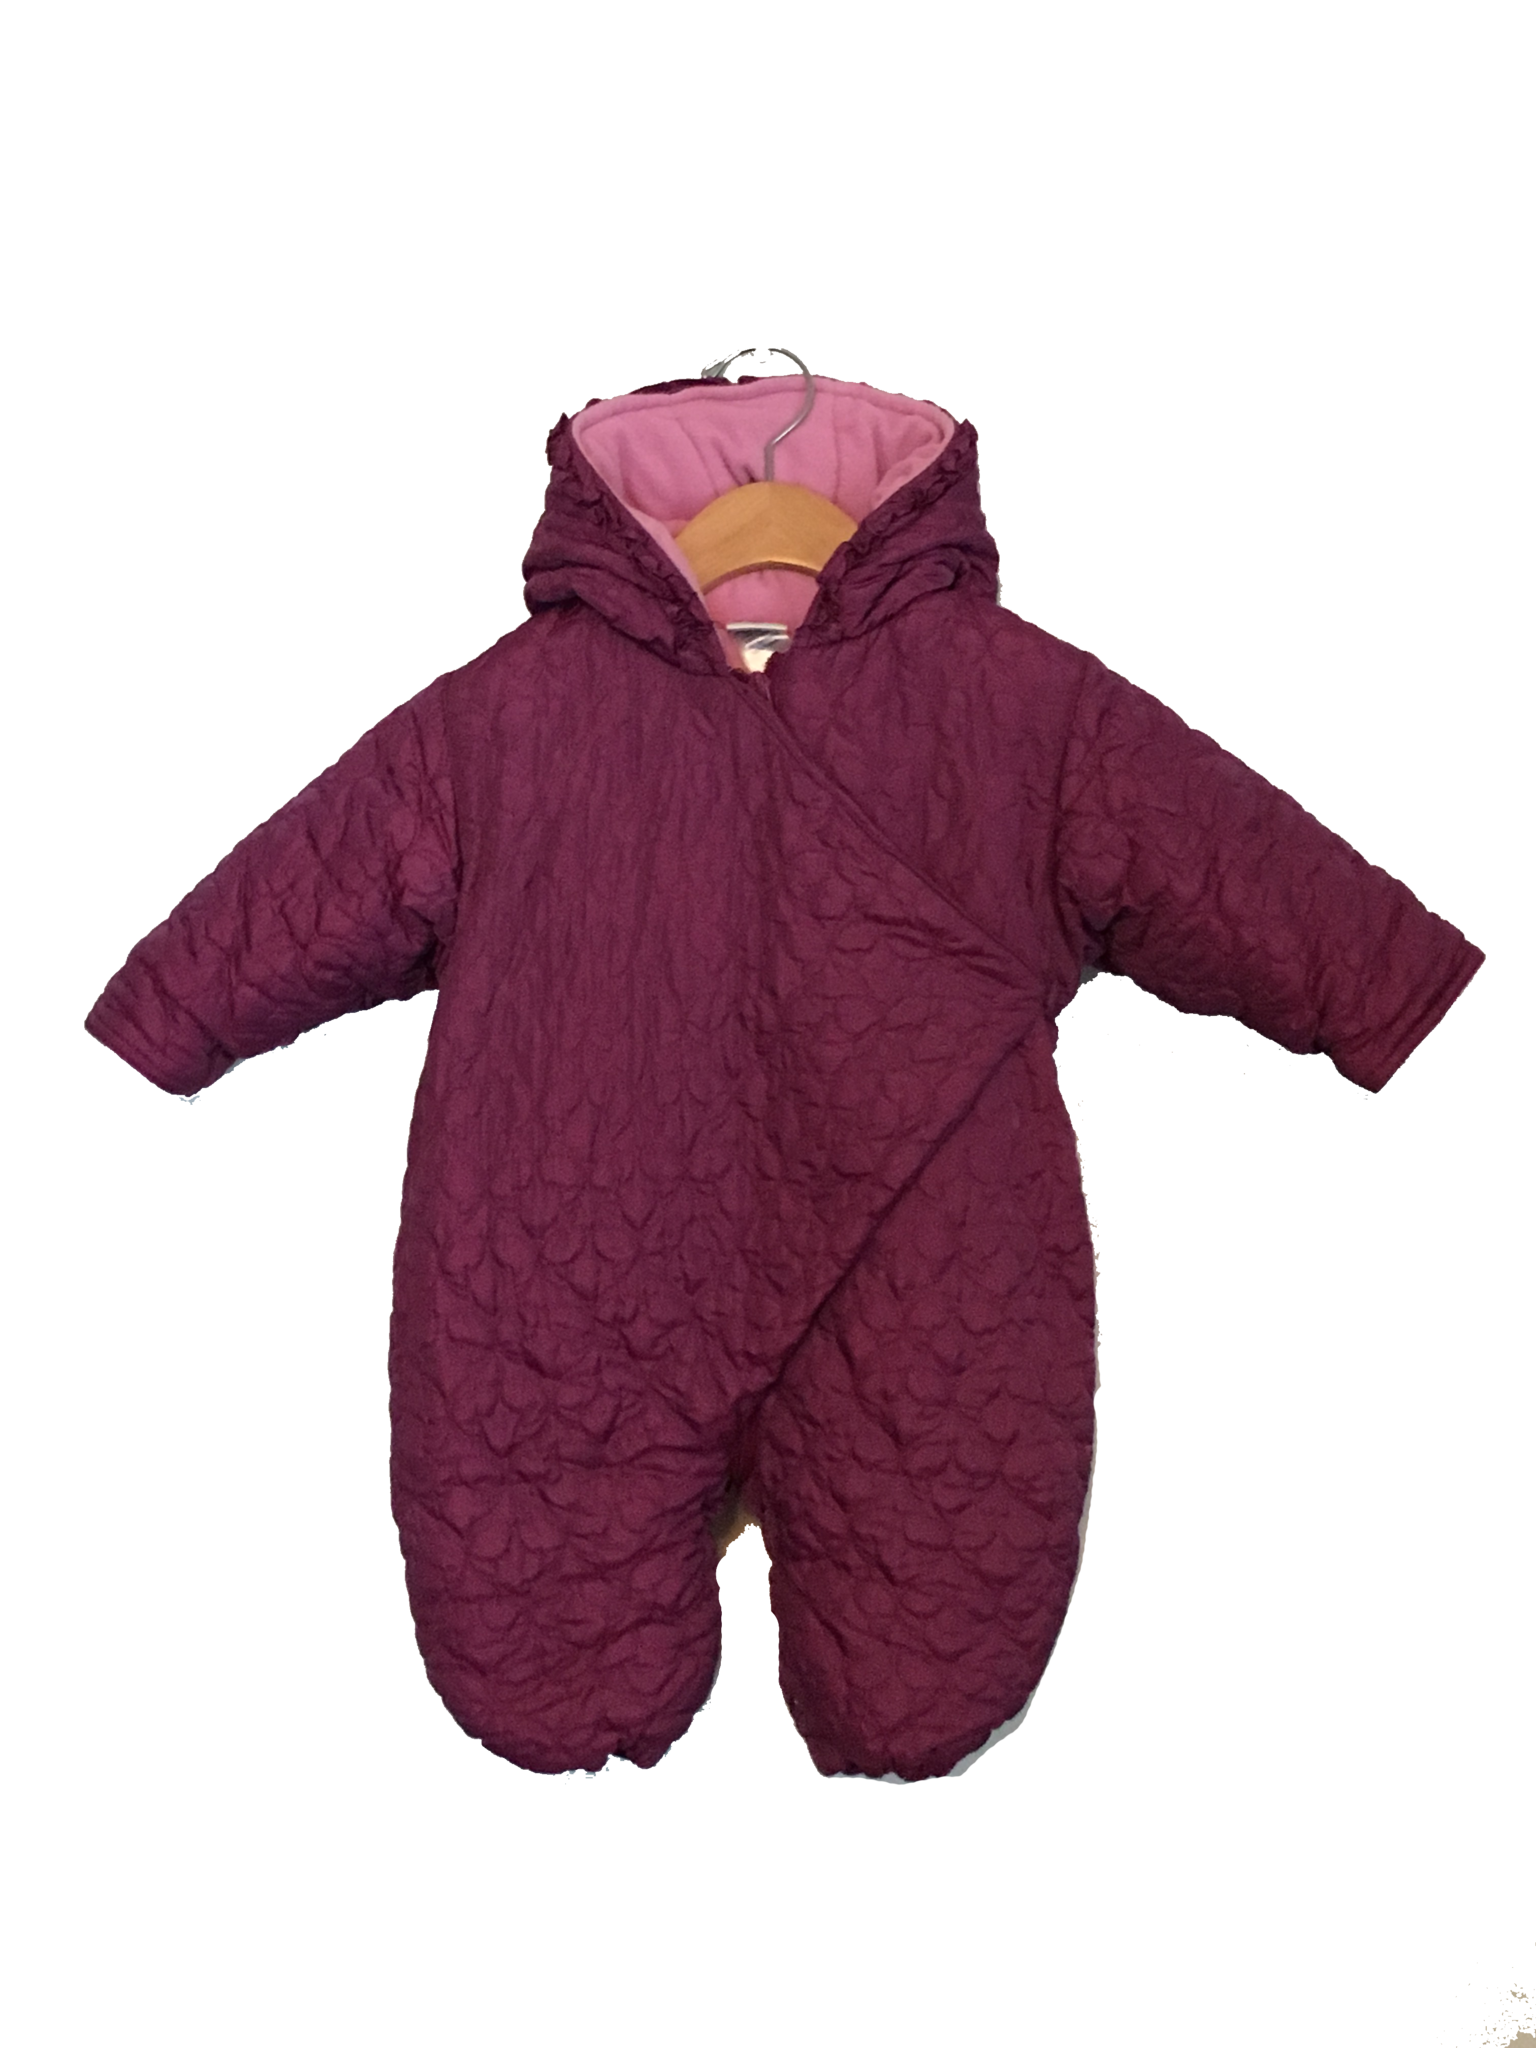 Snowsuit by Absorba- Size 12 Months